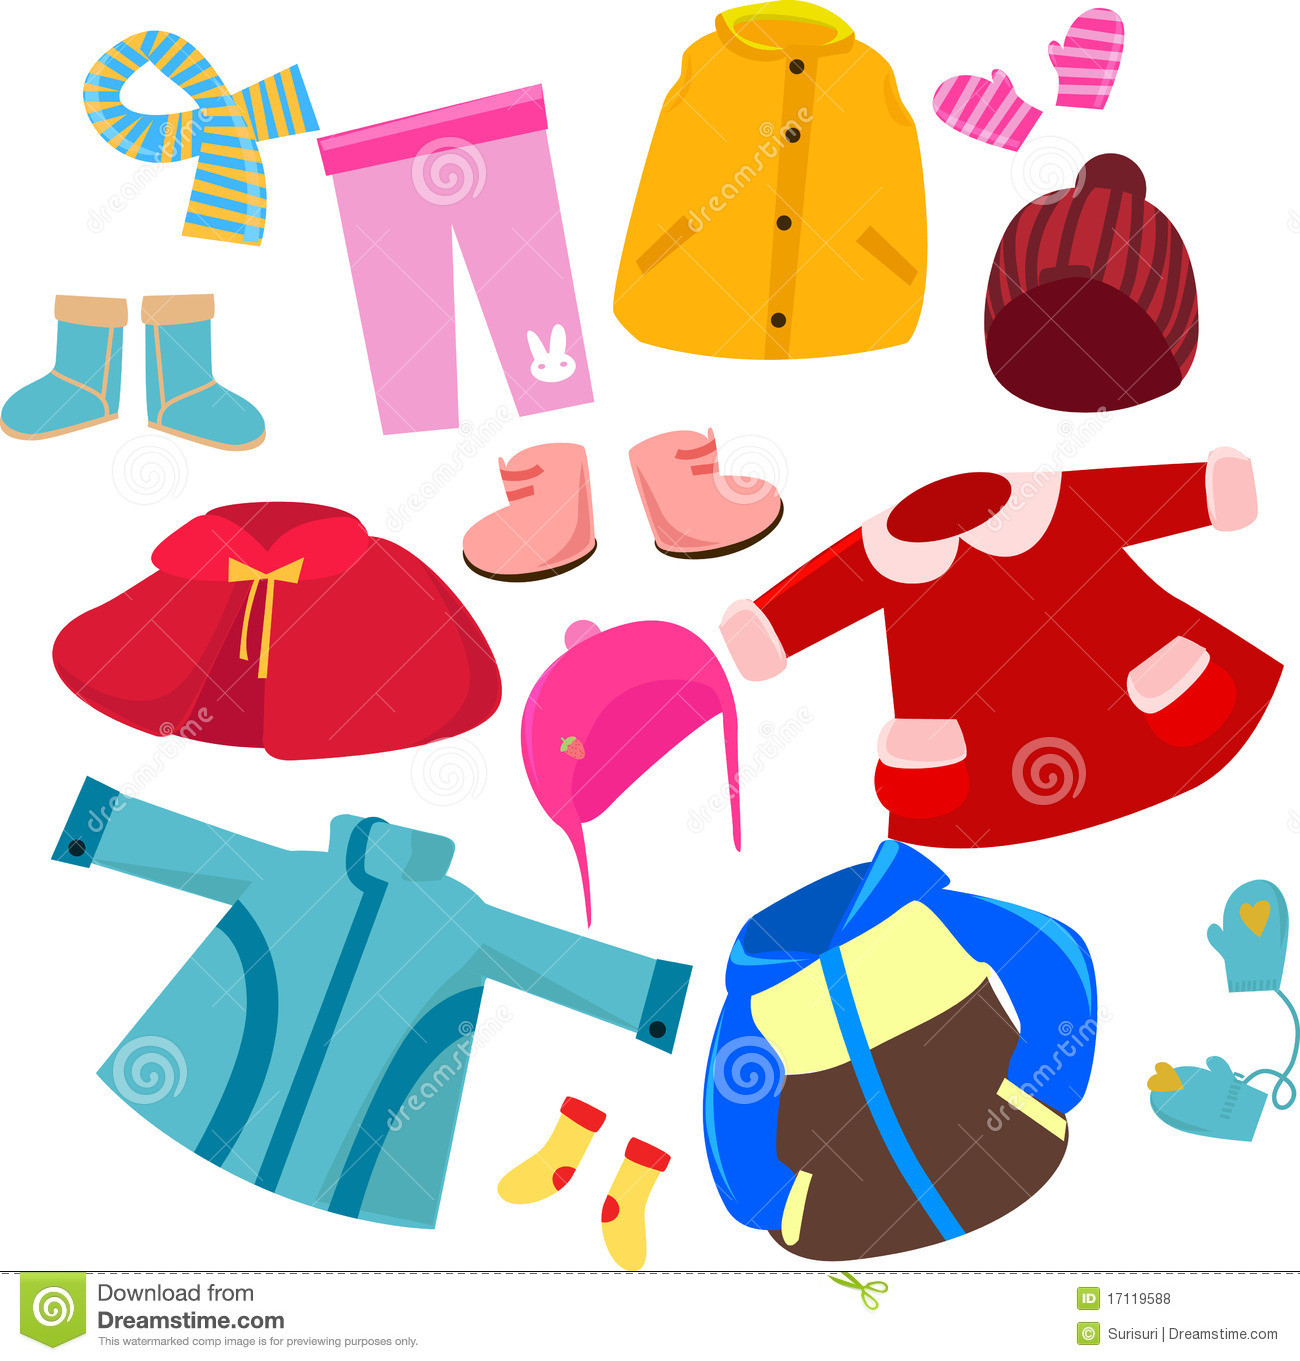 clothes clipart images - photo #20